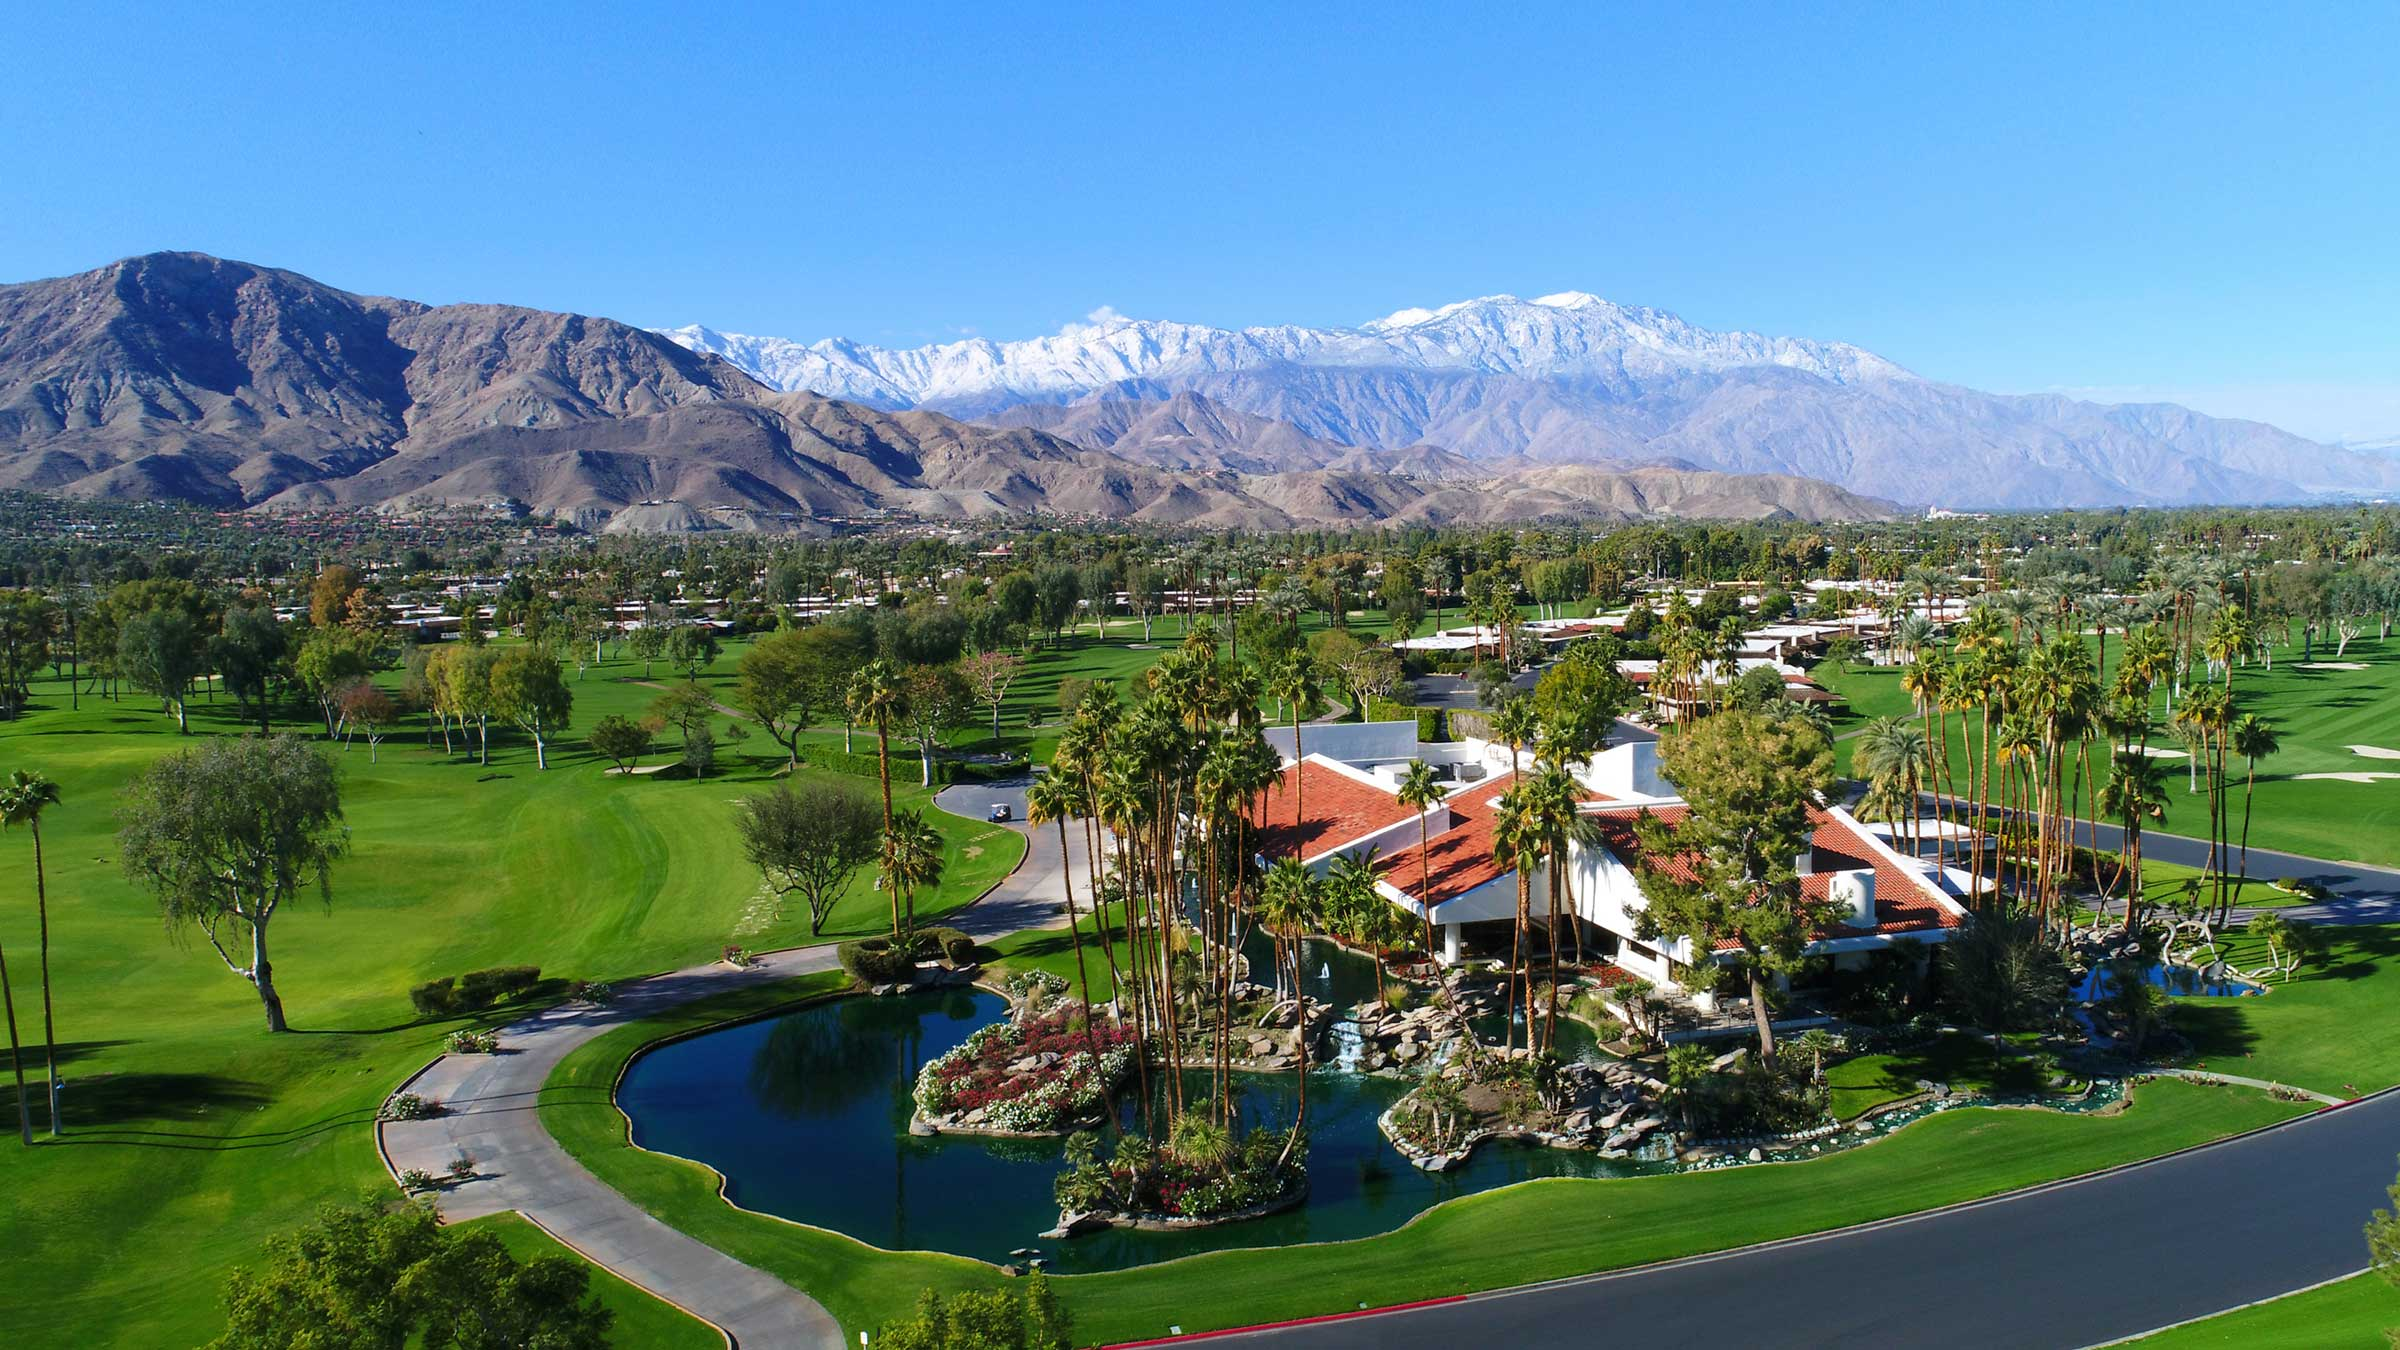 Real Estate at The Springs Country Club in Rancho Mirage, CA